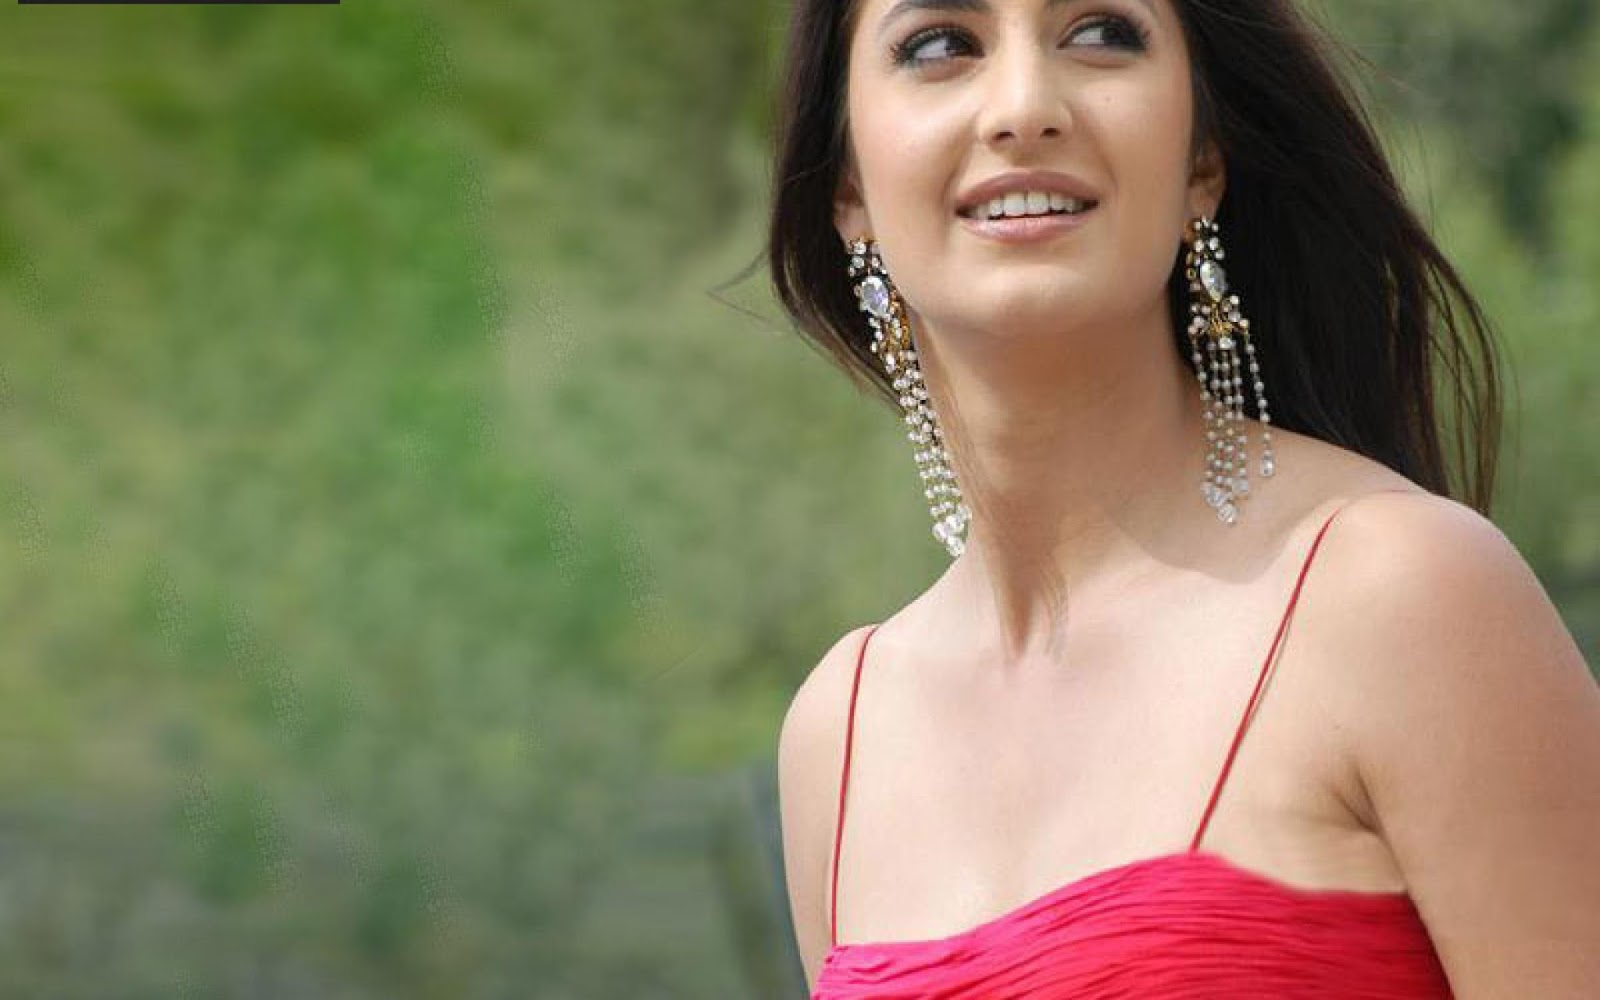 11 bollywood actress katrina kaif hd wallpaper download ||bikini hd